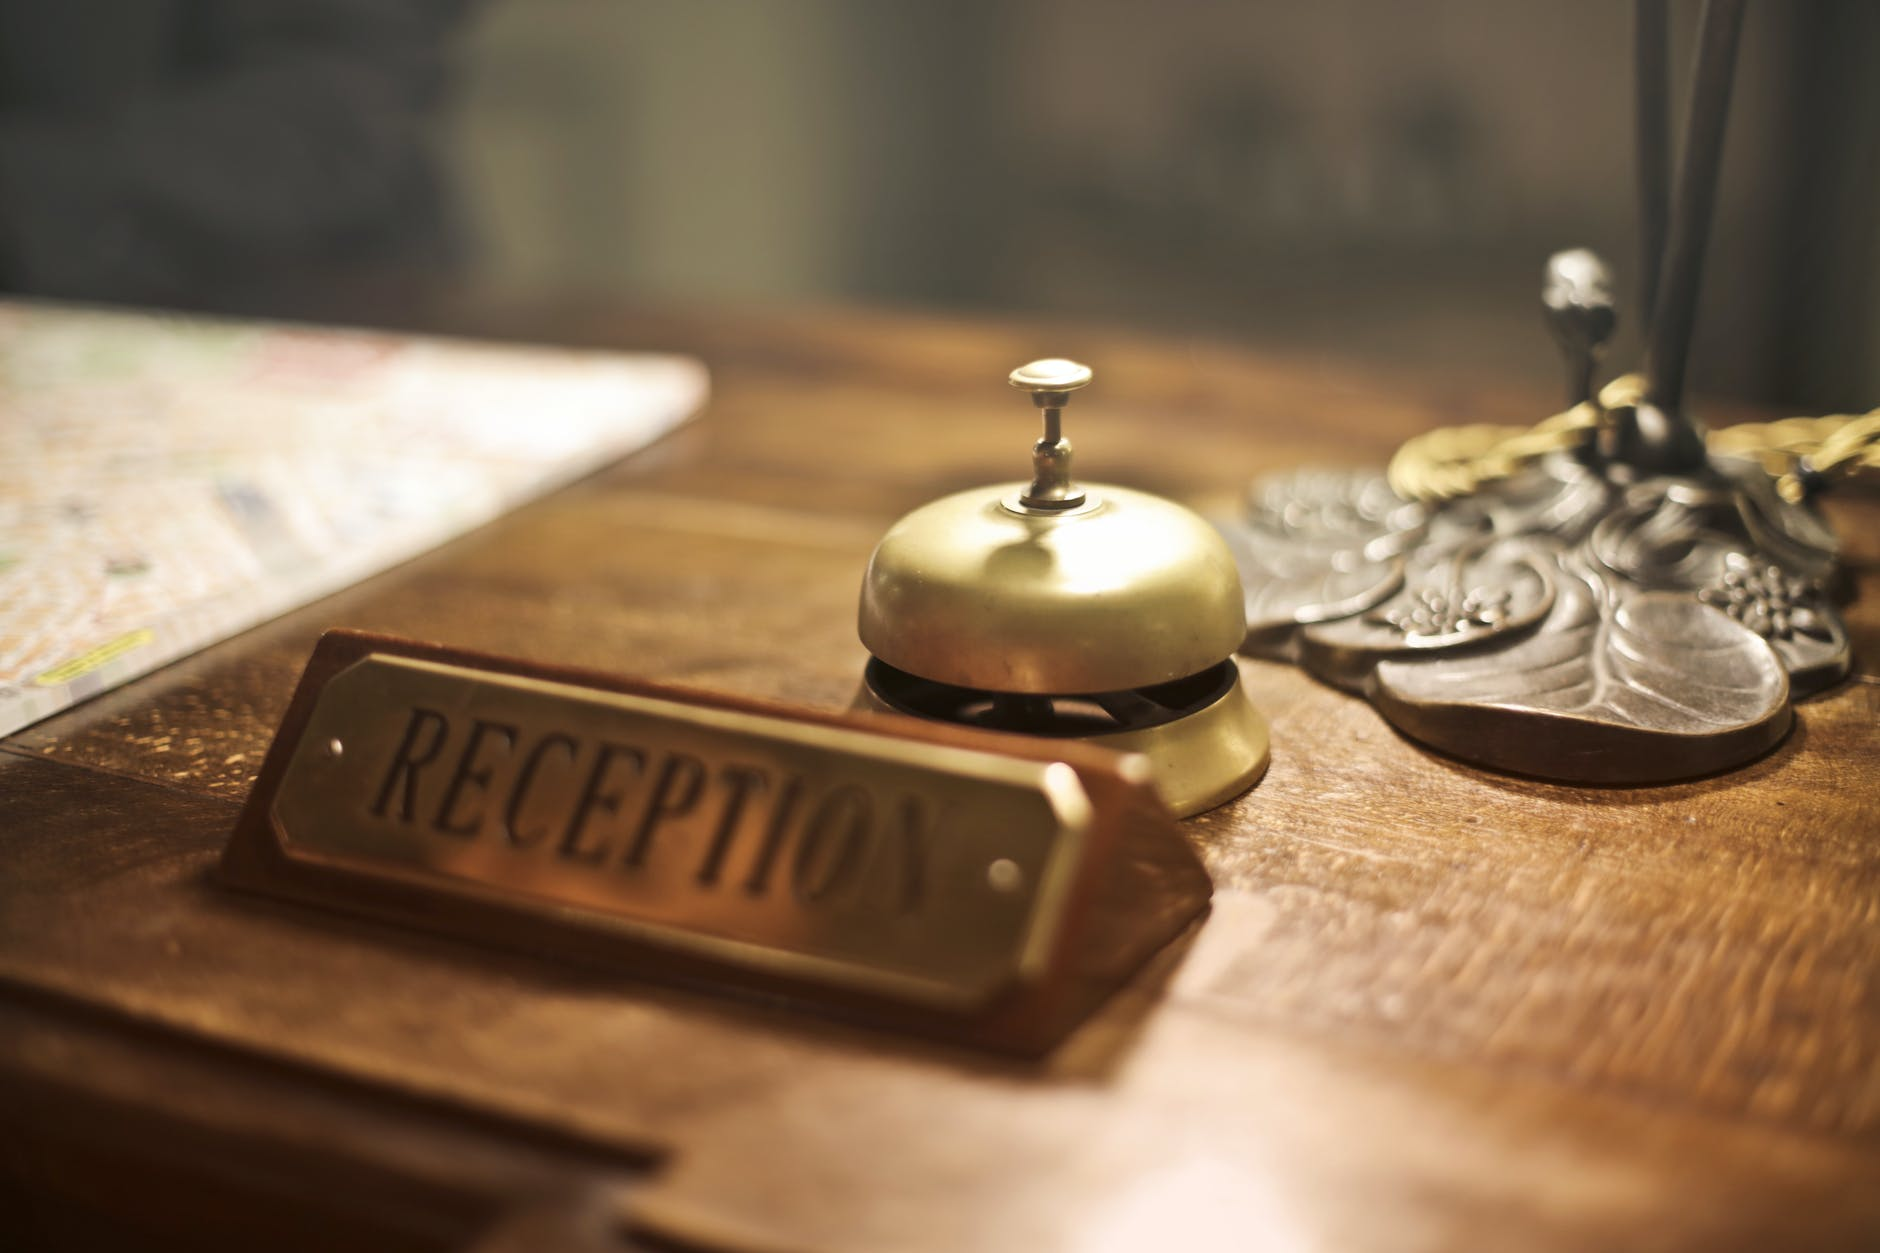 A bell at the reception desk